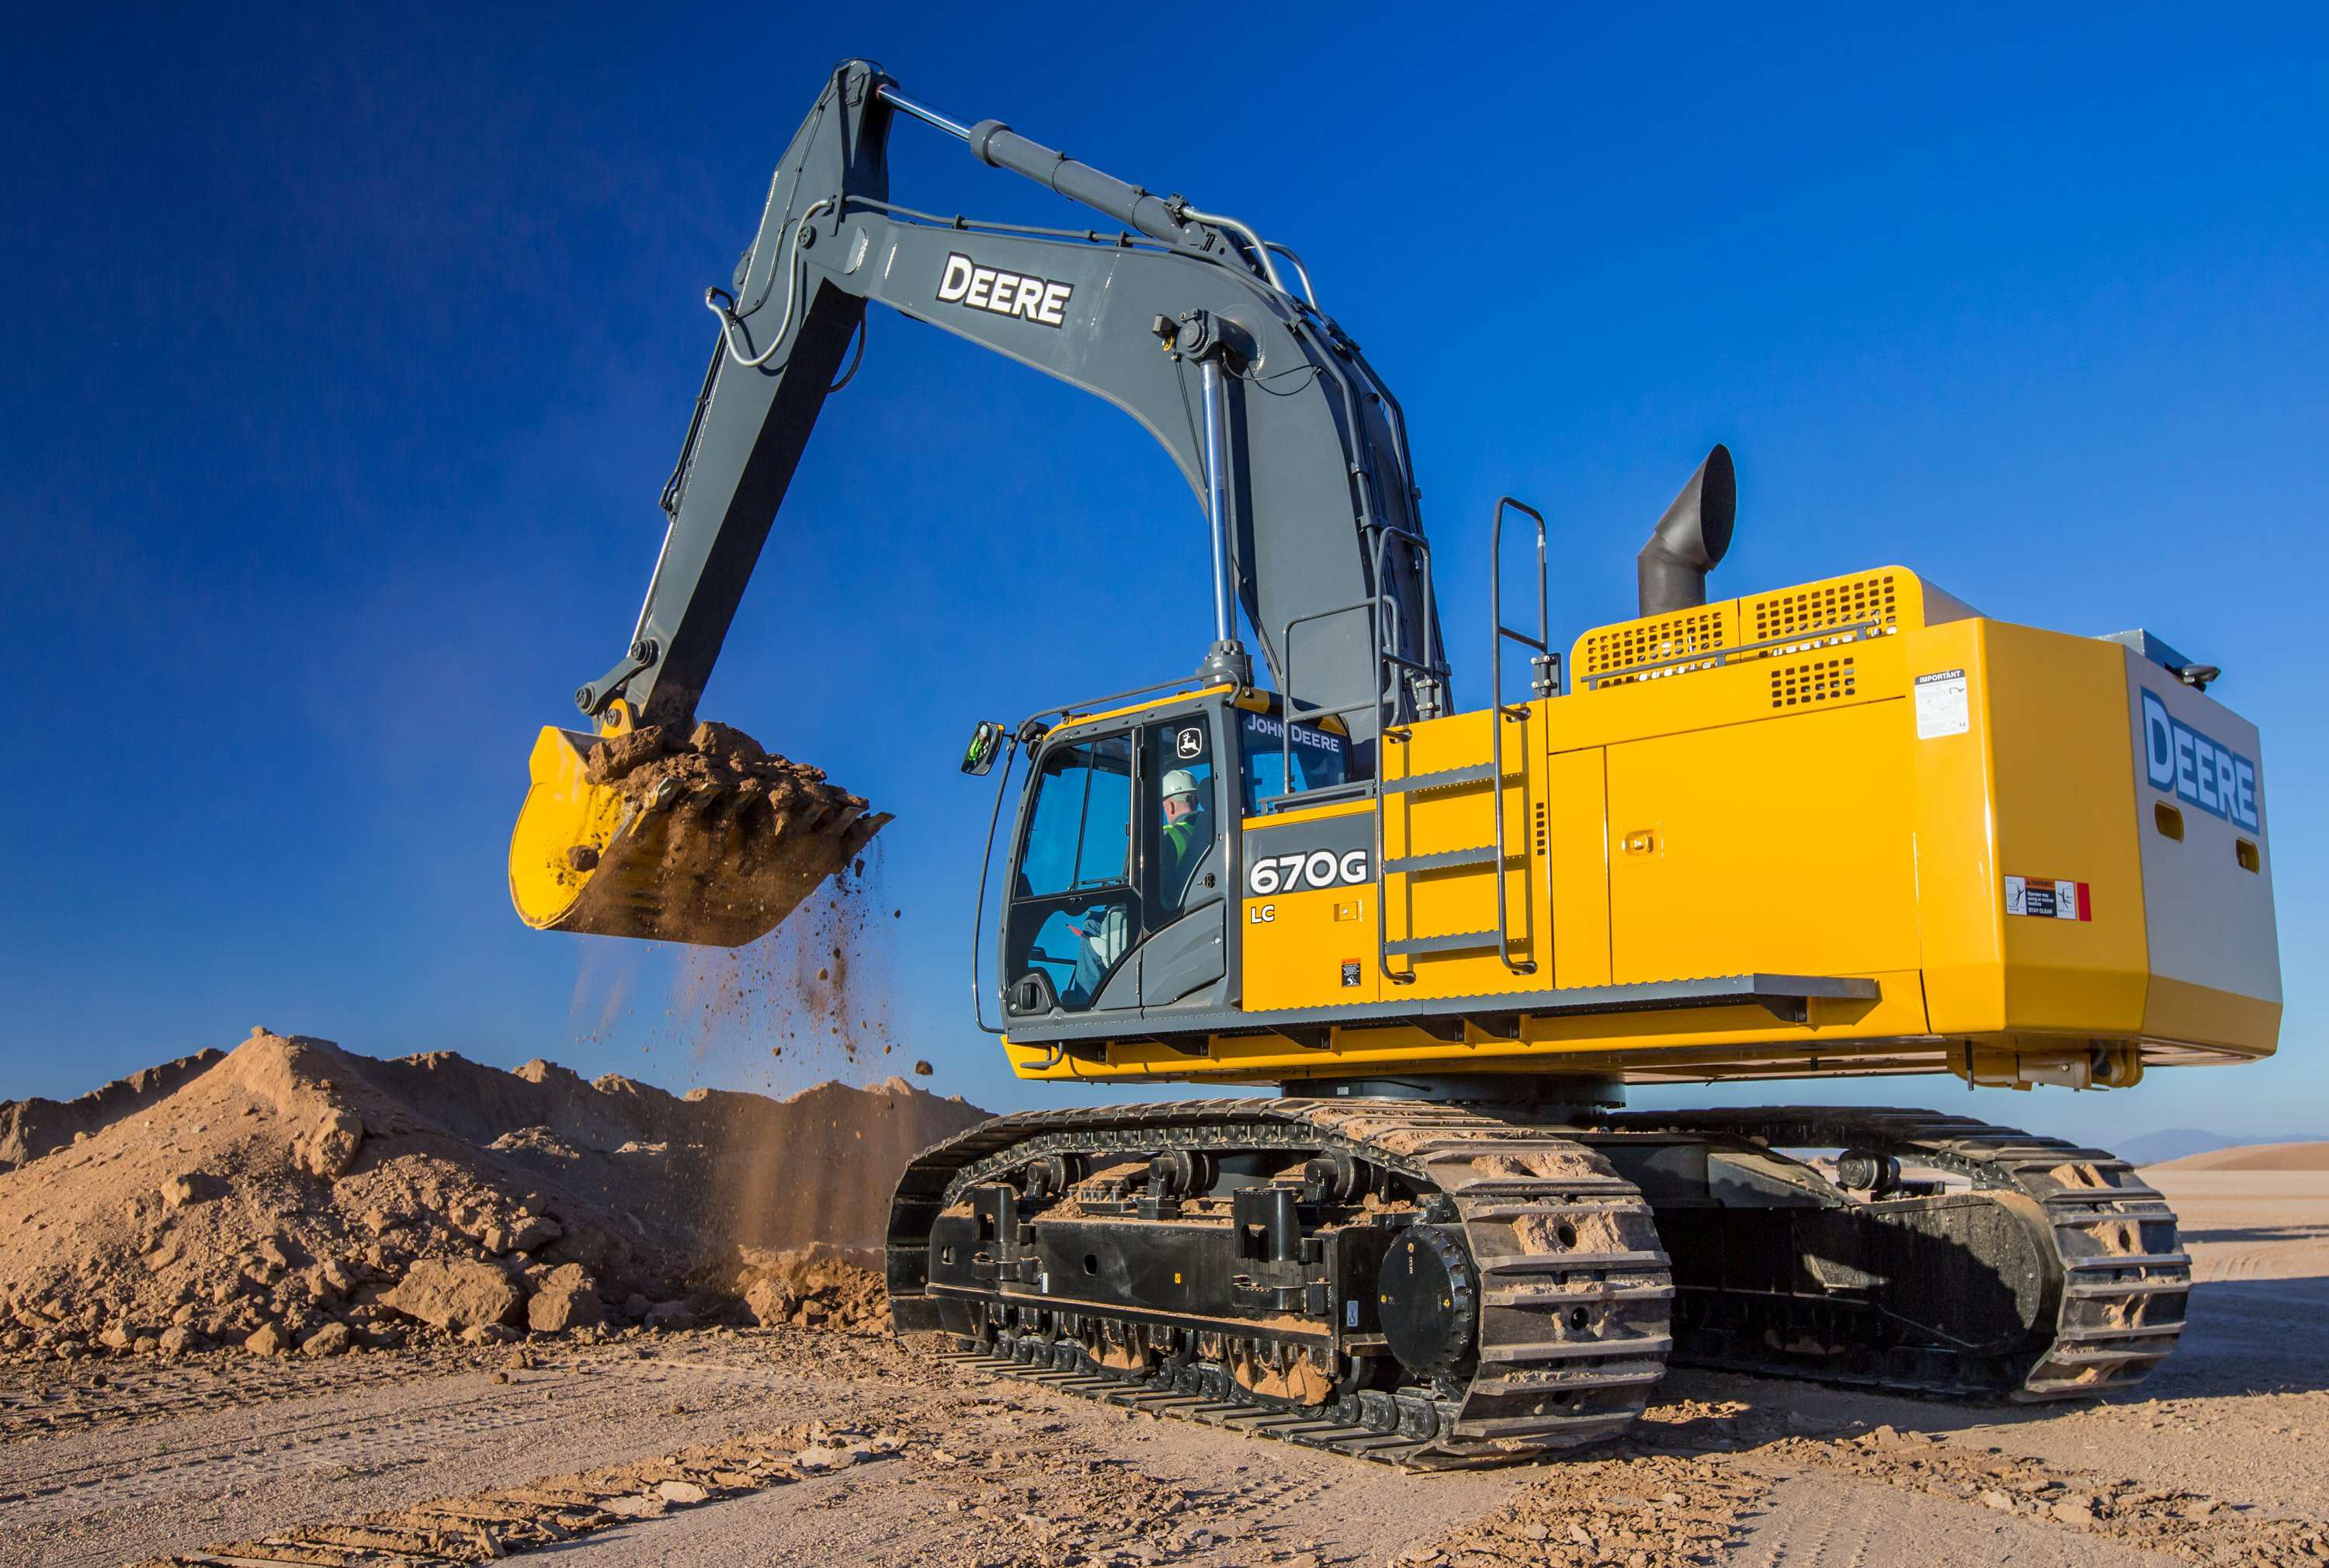 John Deere Updates 670g Lc Excavator With Improved Hydraulics